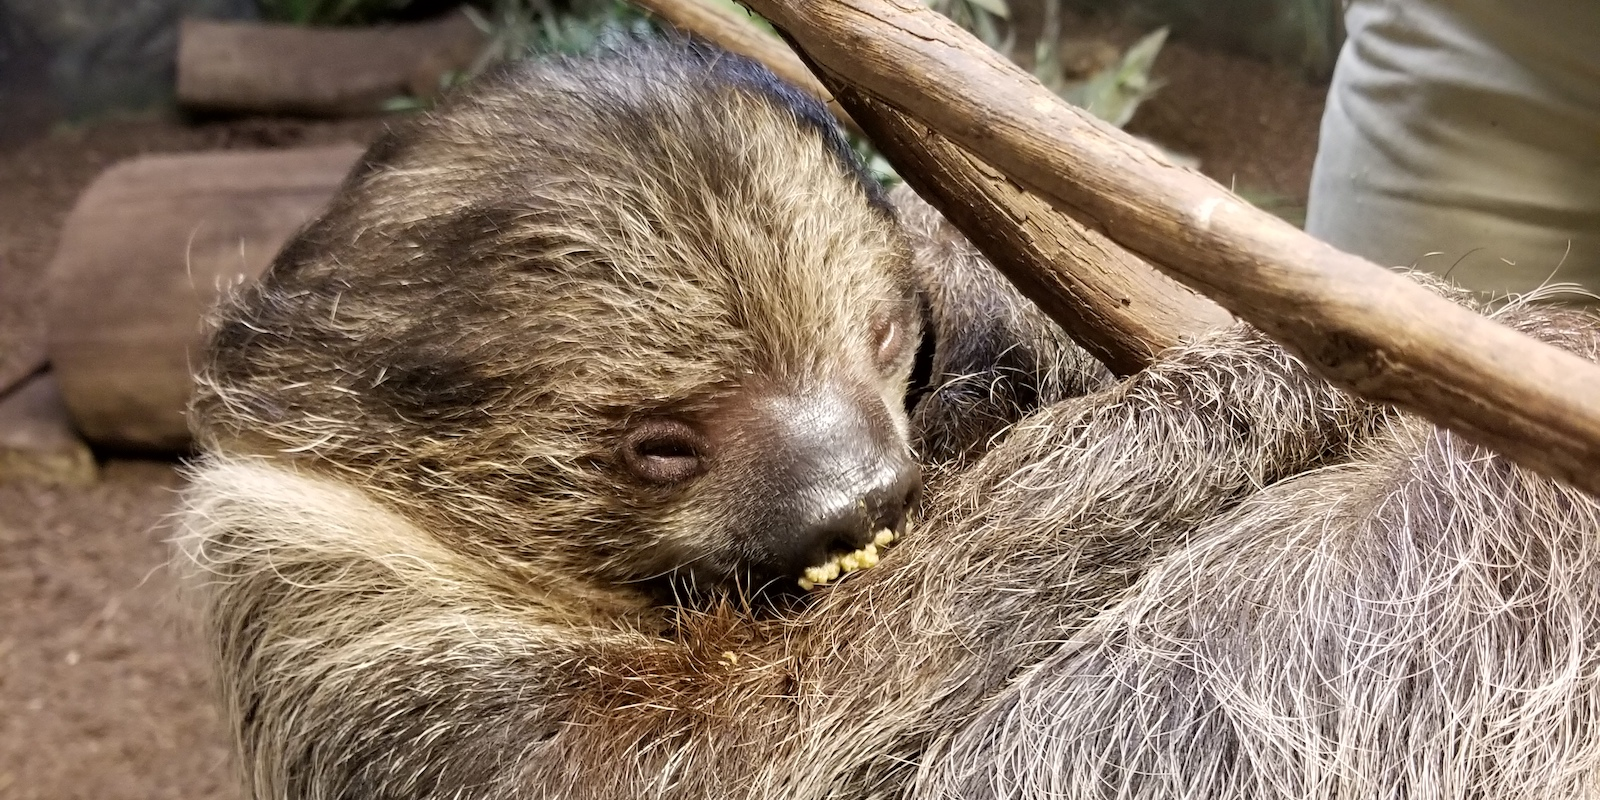 Two-Toed Sloth Encounter photo